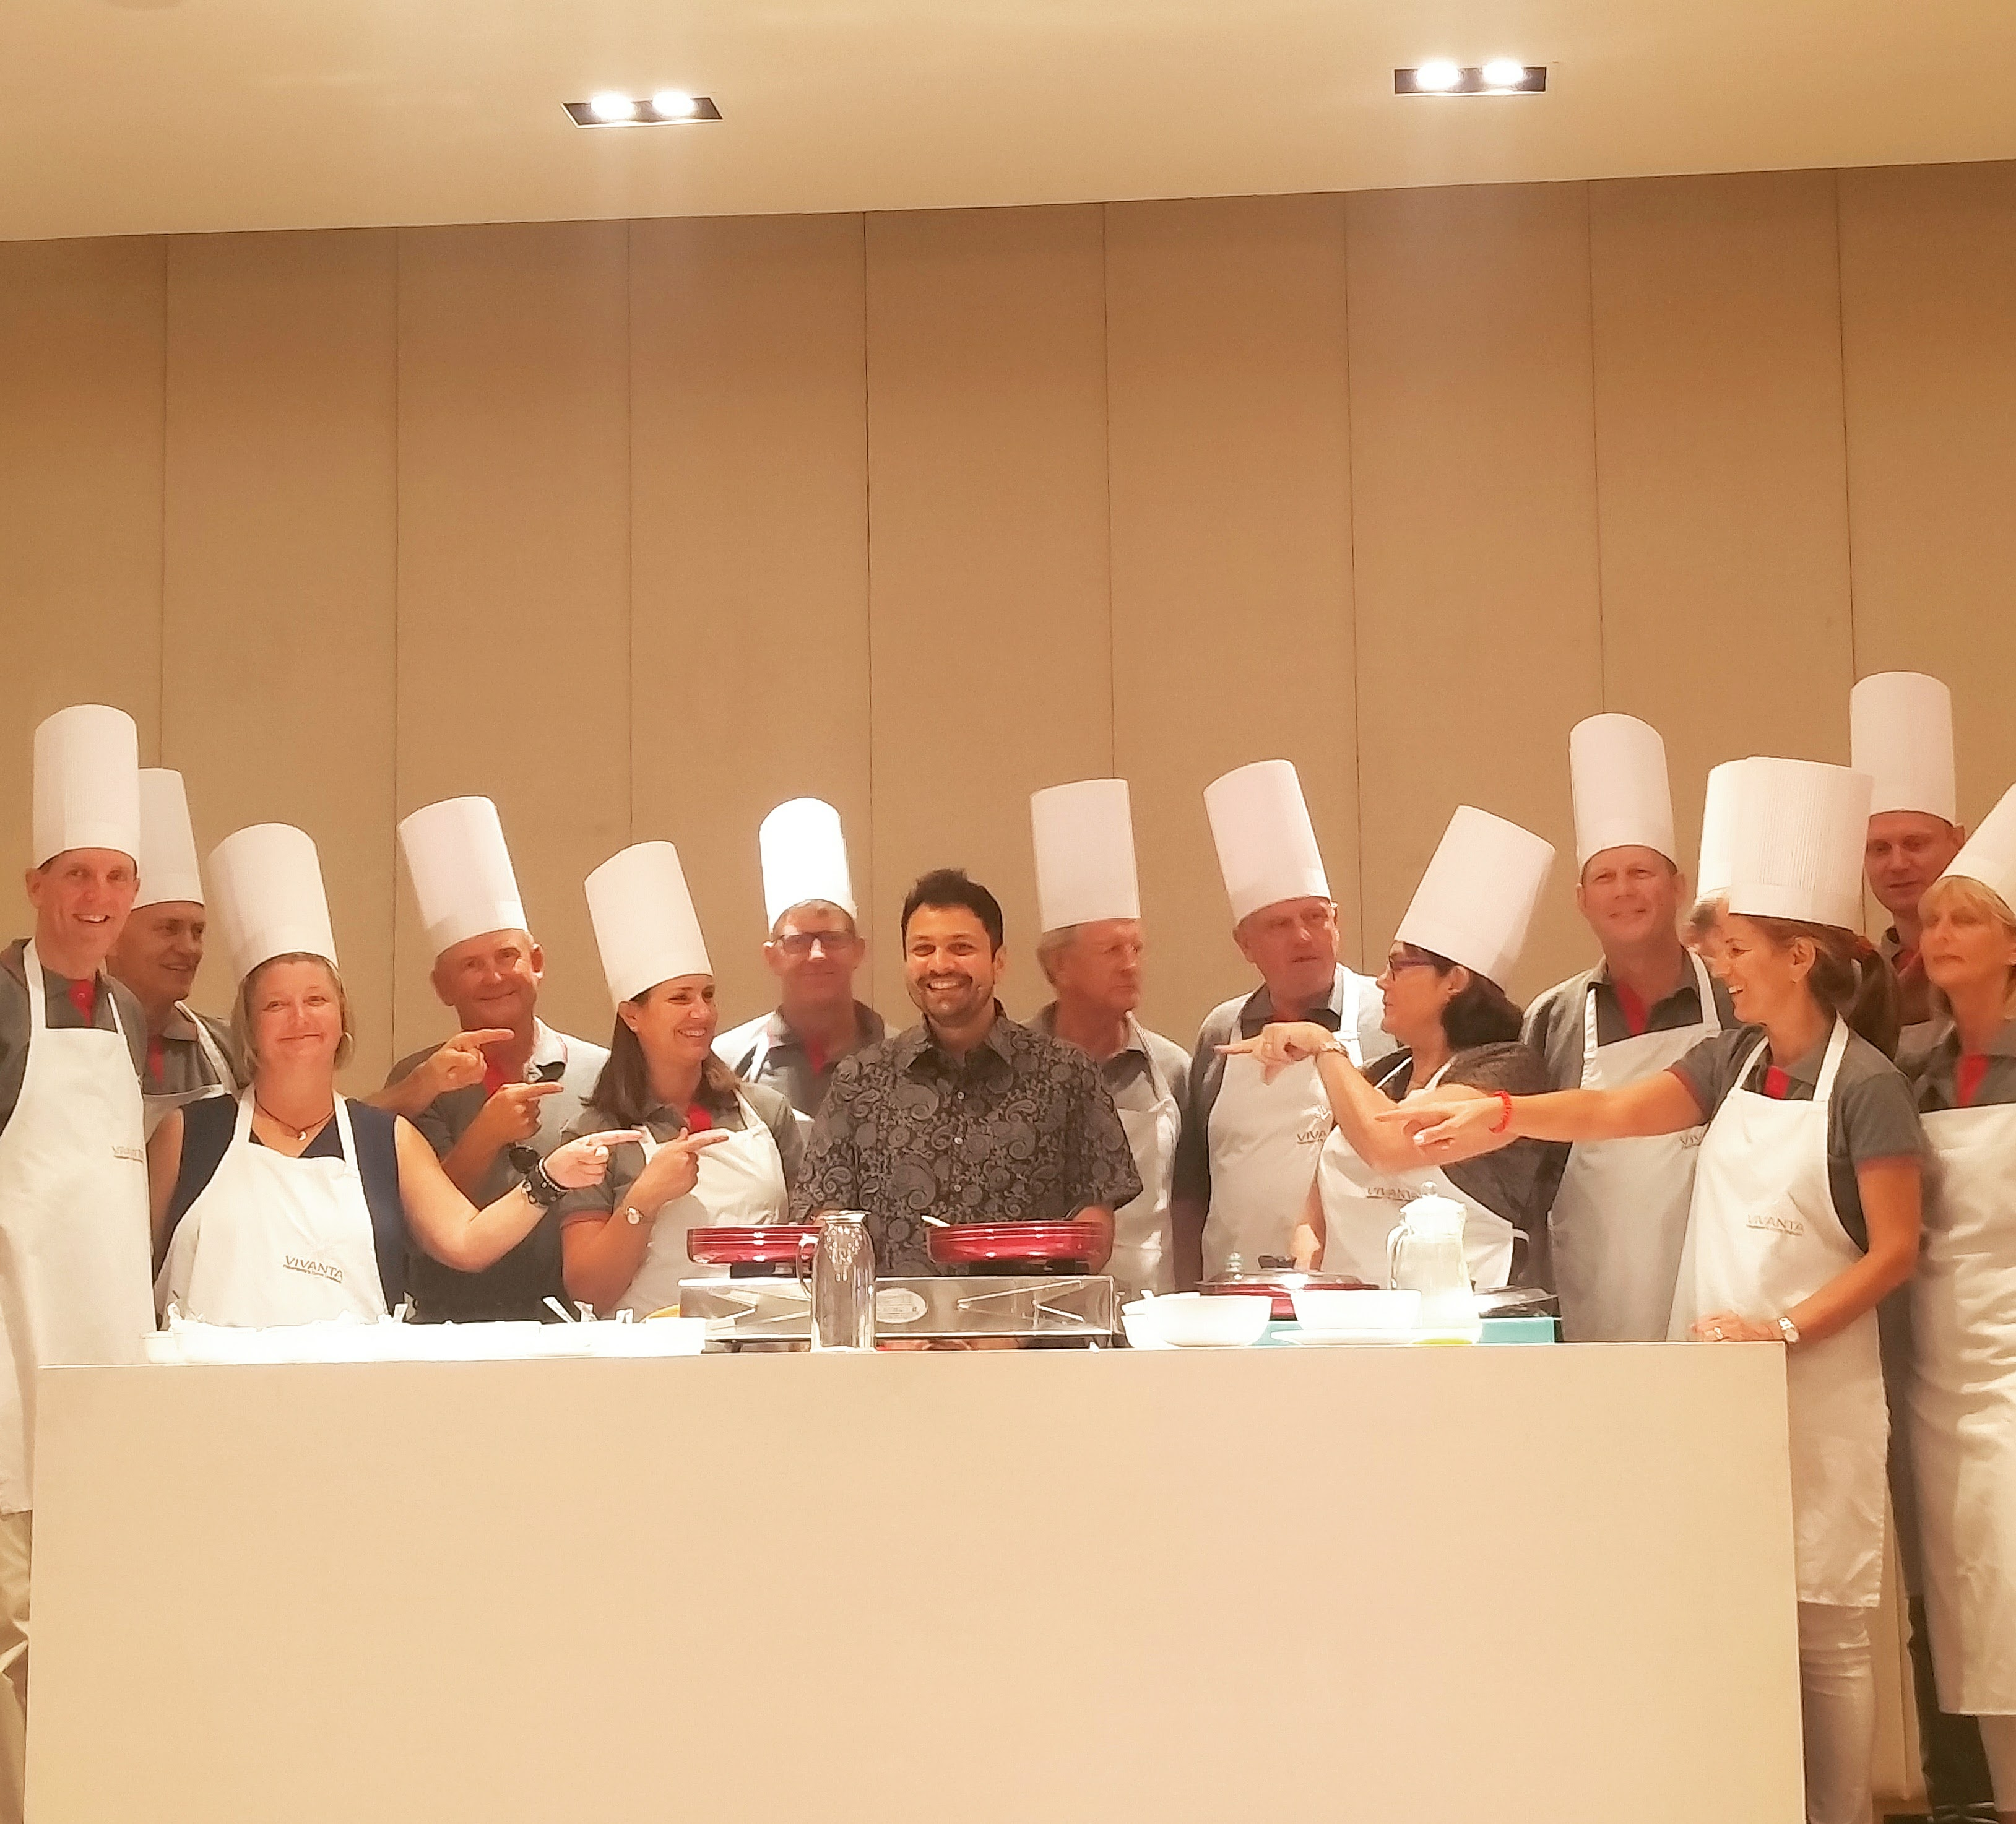 Team Building Cookery Workshop